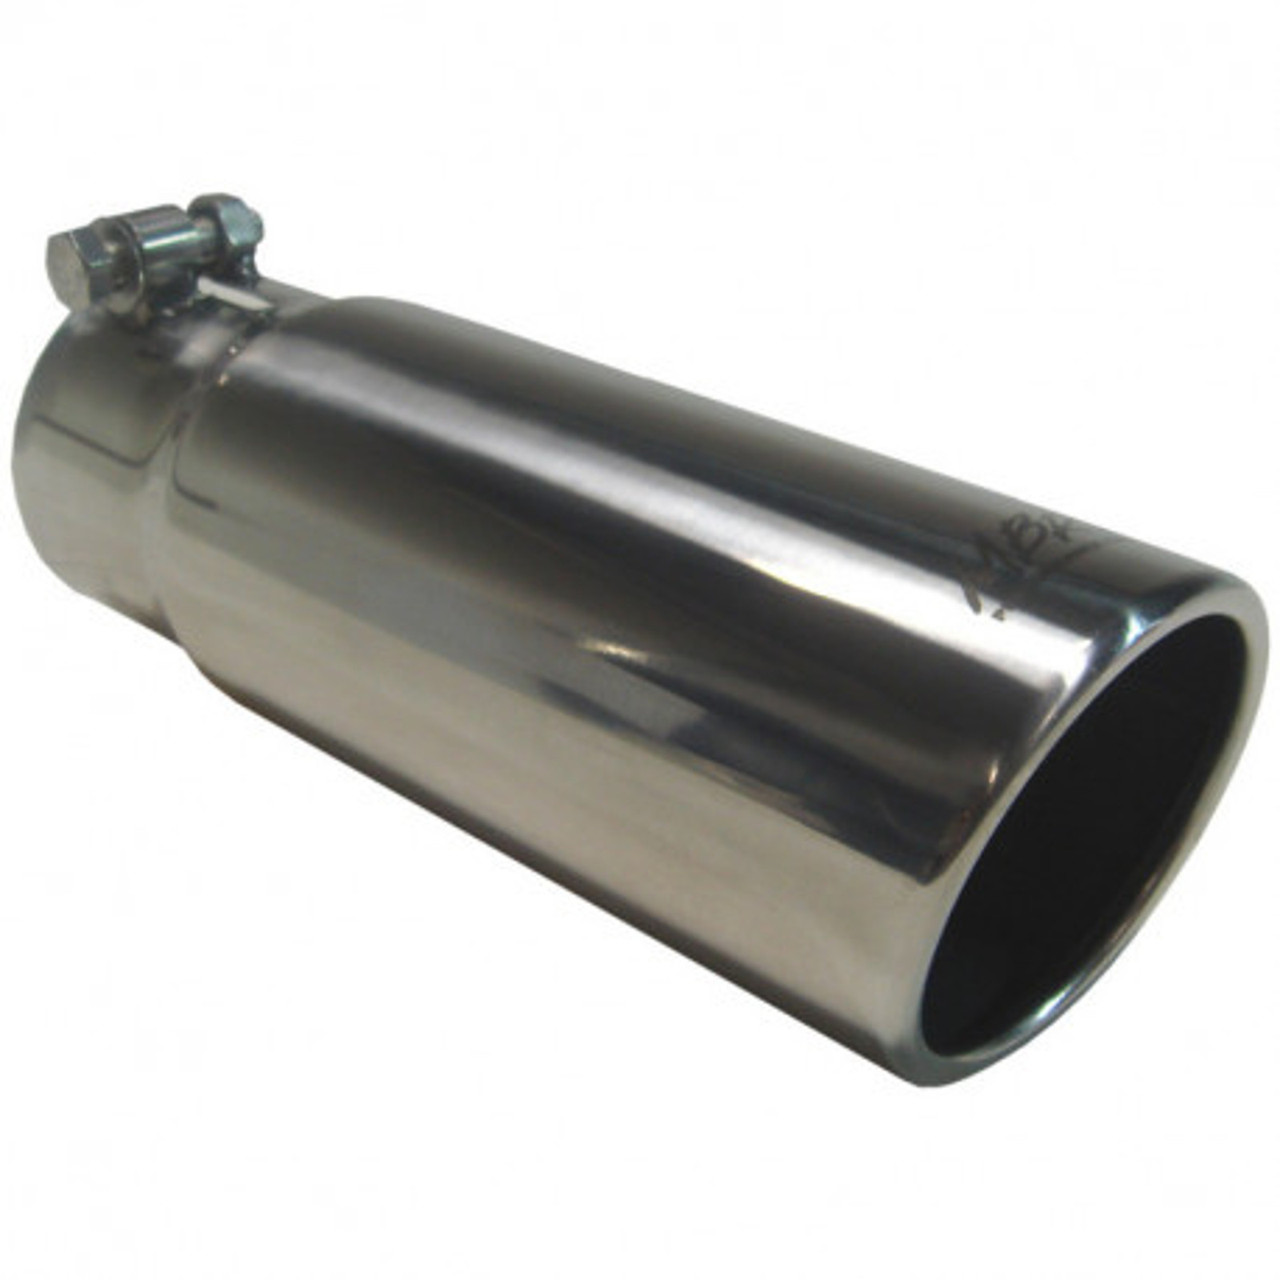 MBRP T5142 3.5 O.D 2.5 Inlet 16 Length T304 Stainless Steel Angled Cut Rolled Exhaust Tip MBRP Exhaust